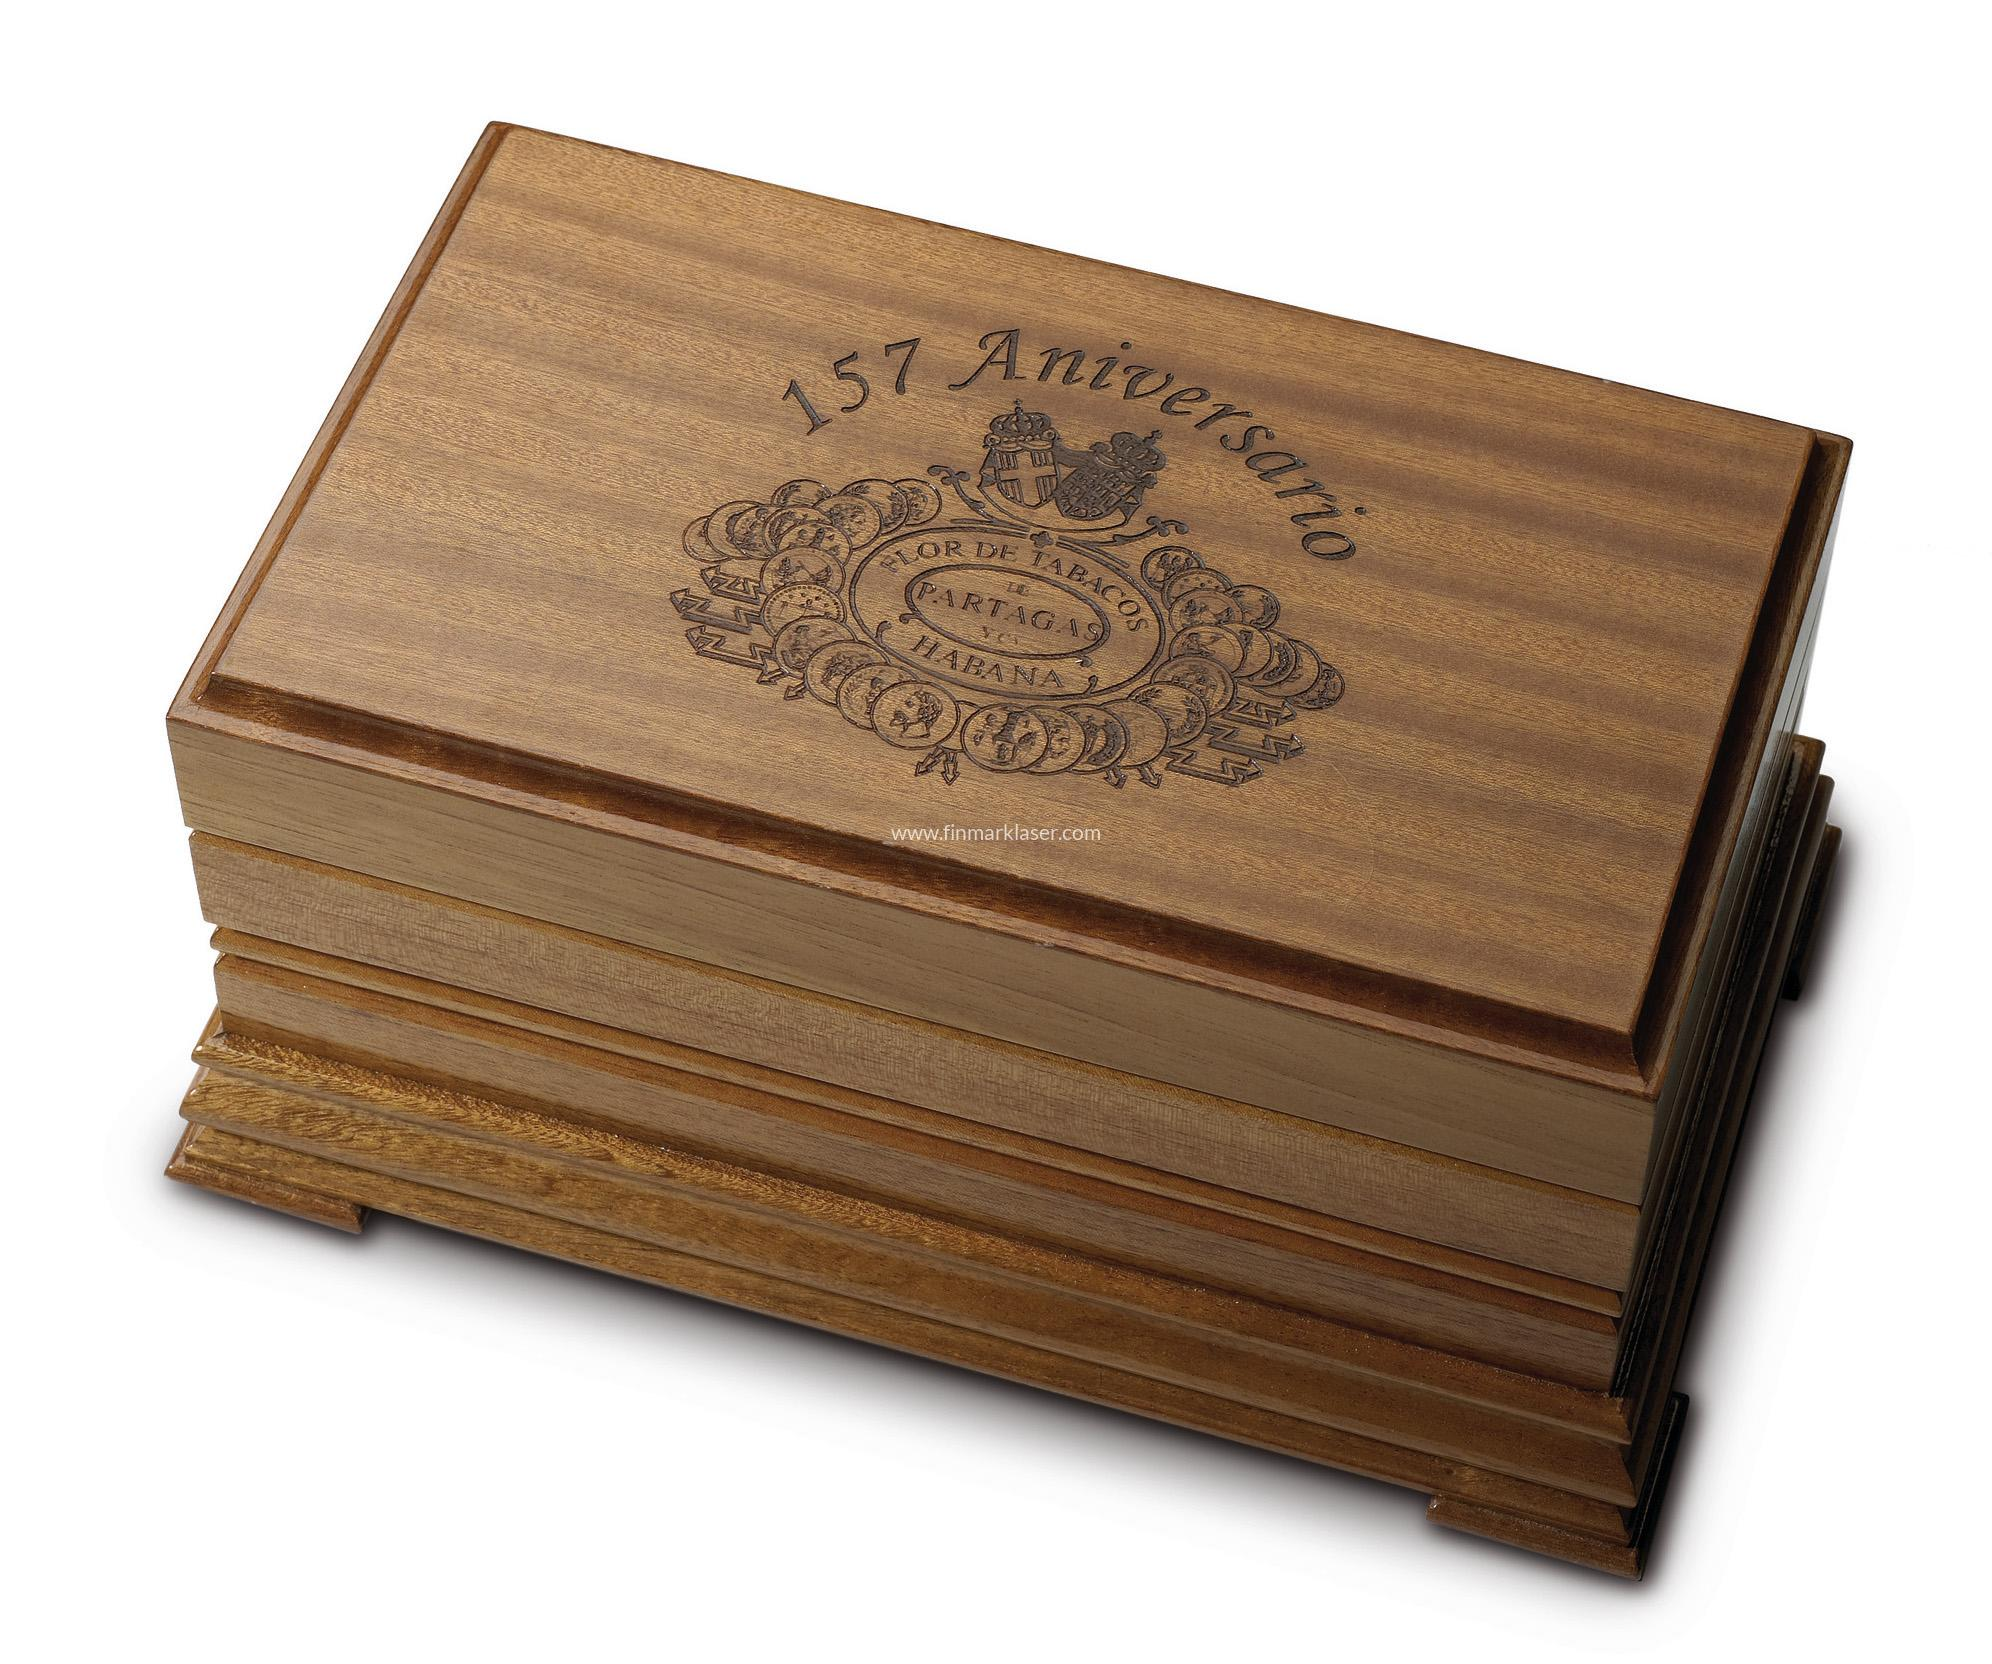 wood1-Wood-chest-Promotional.jpg